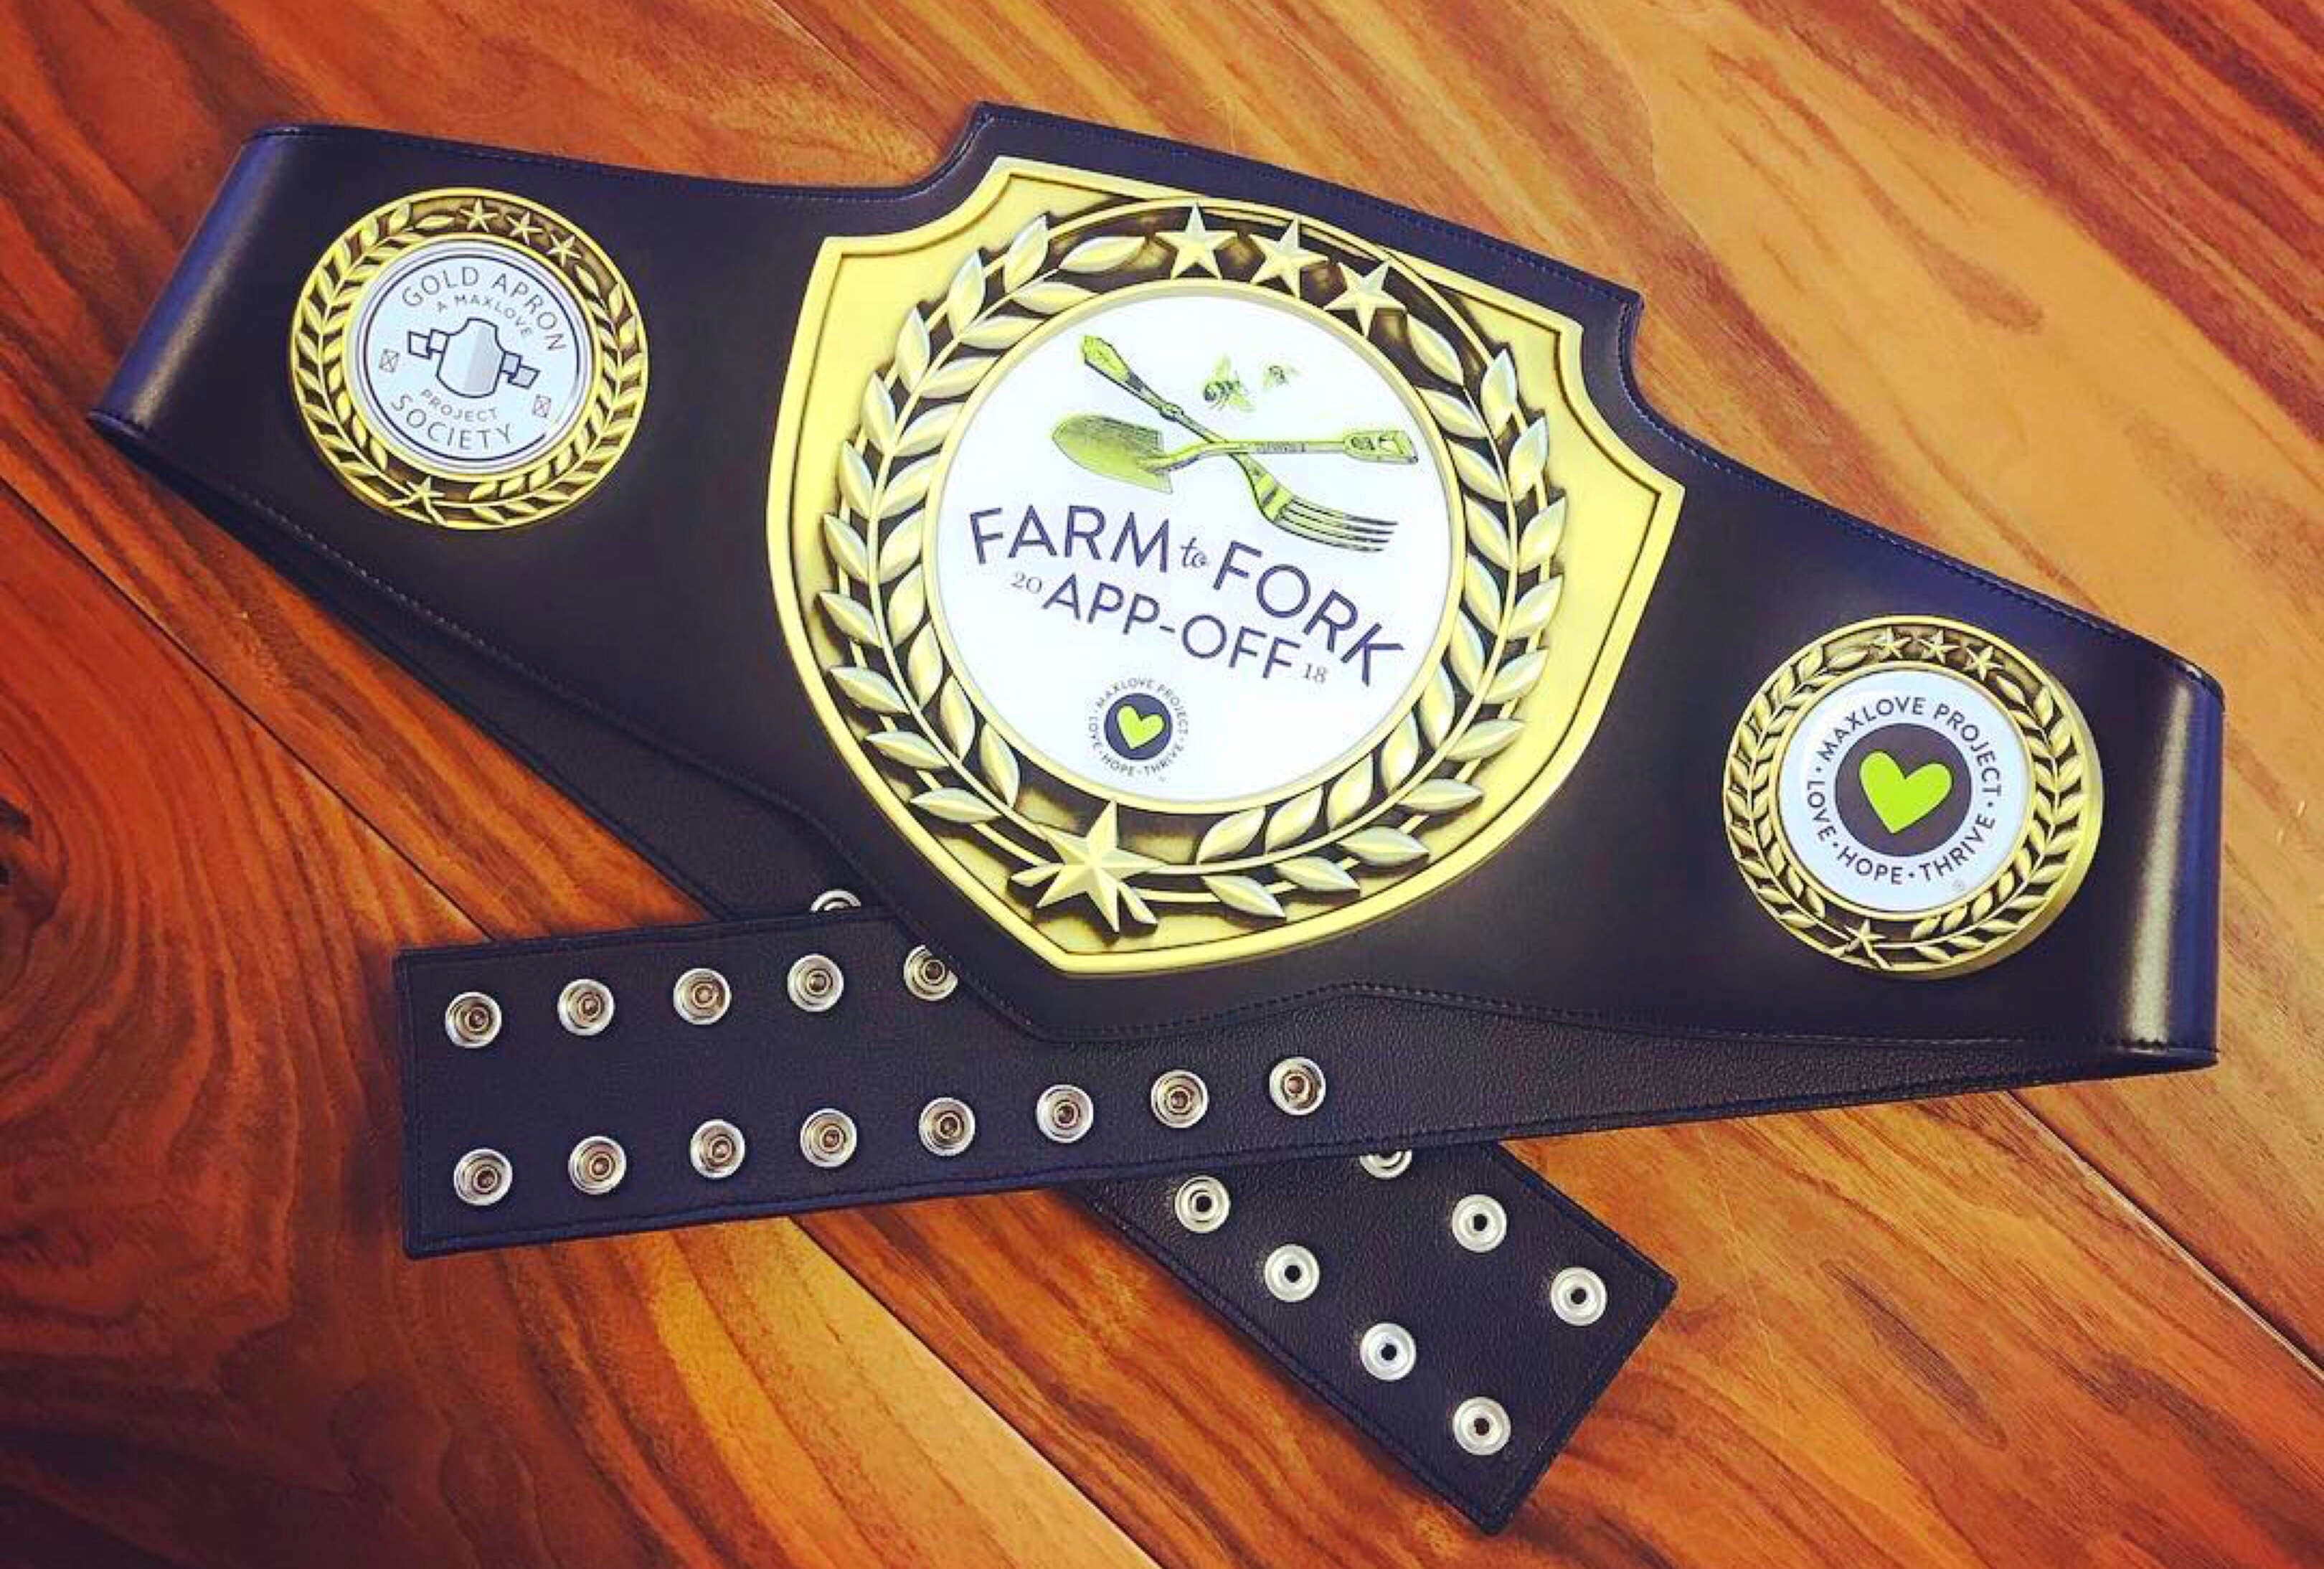 App Off winning belt